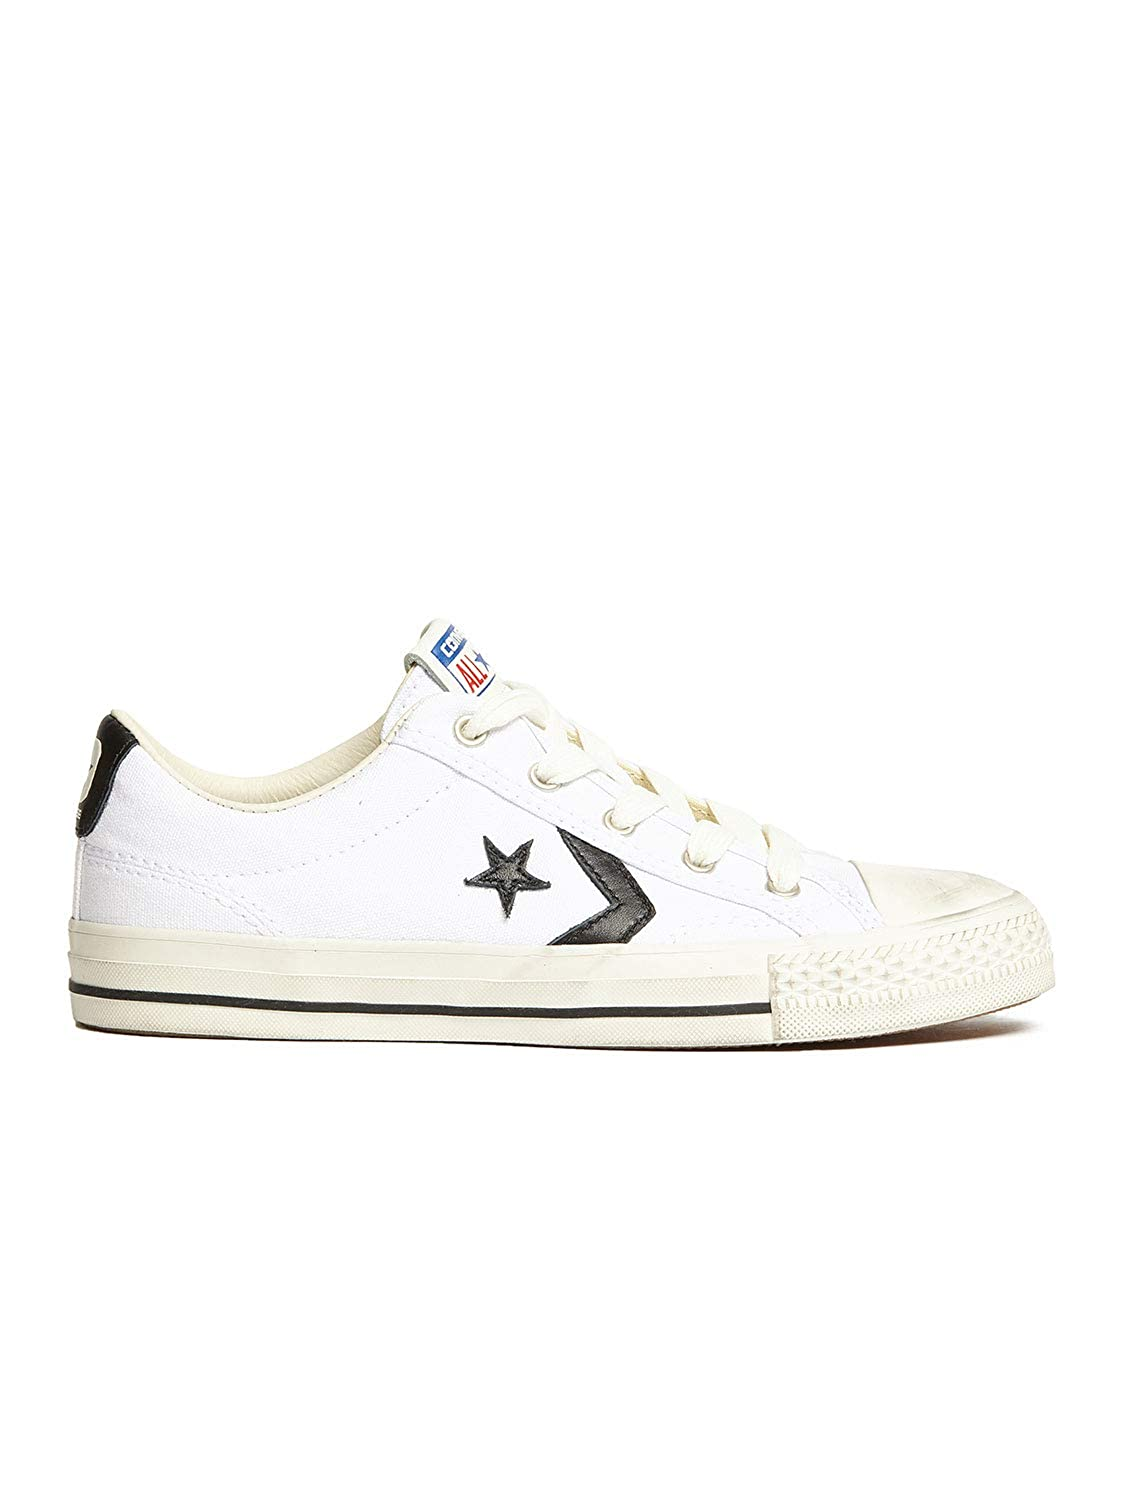 Bianco black Converse 160925C Sneakers Man